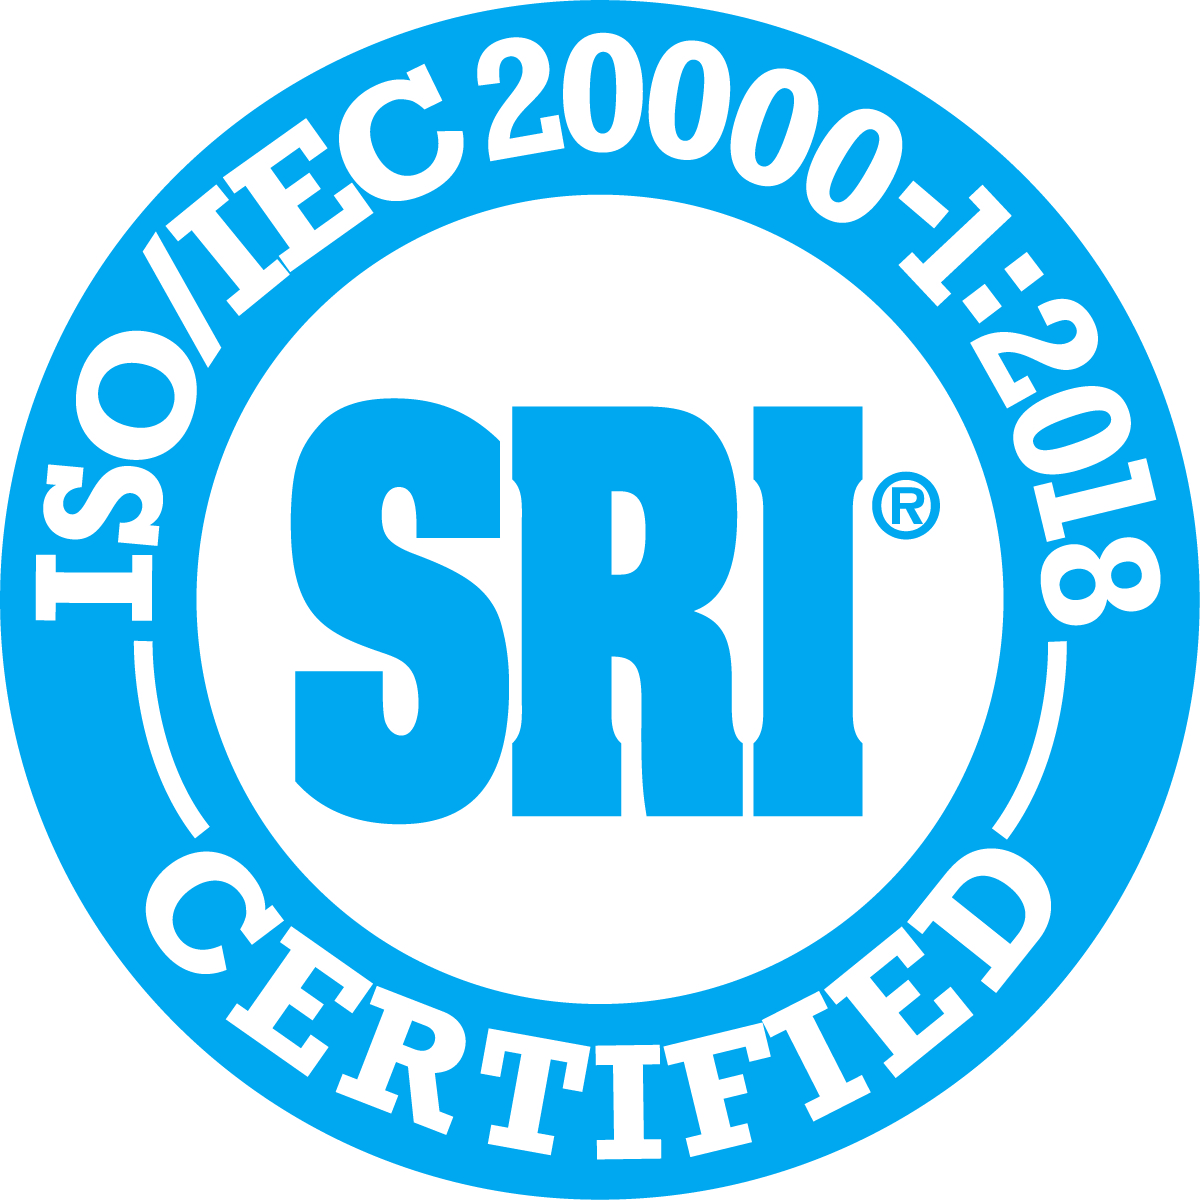 iso_iec_20000_1_2018_certified_seal